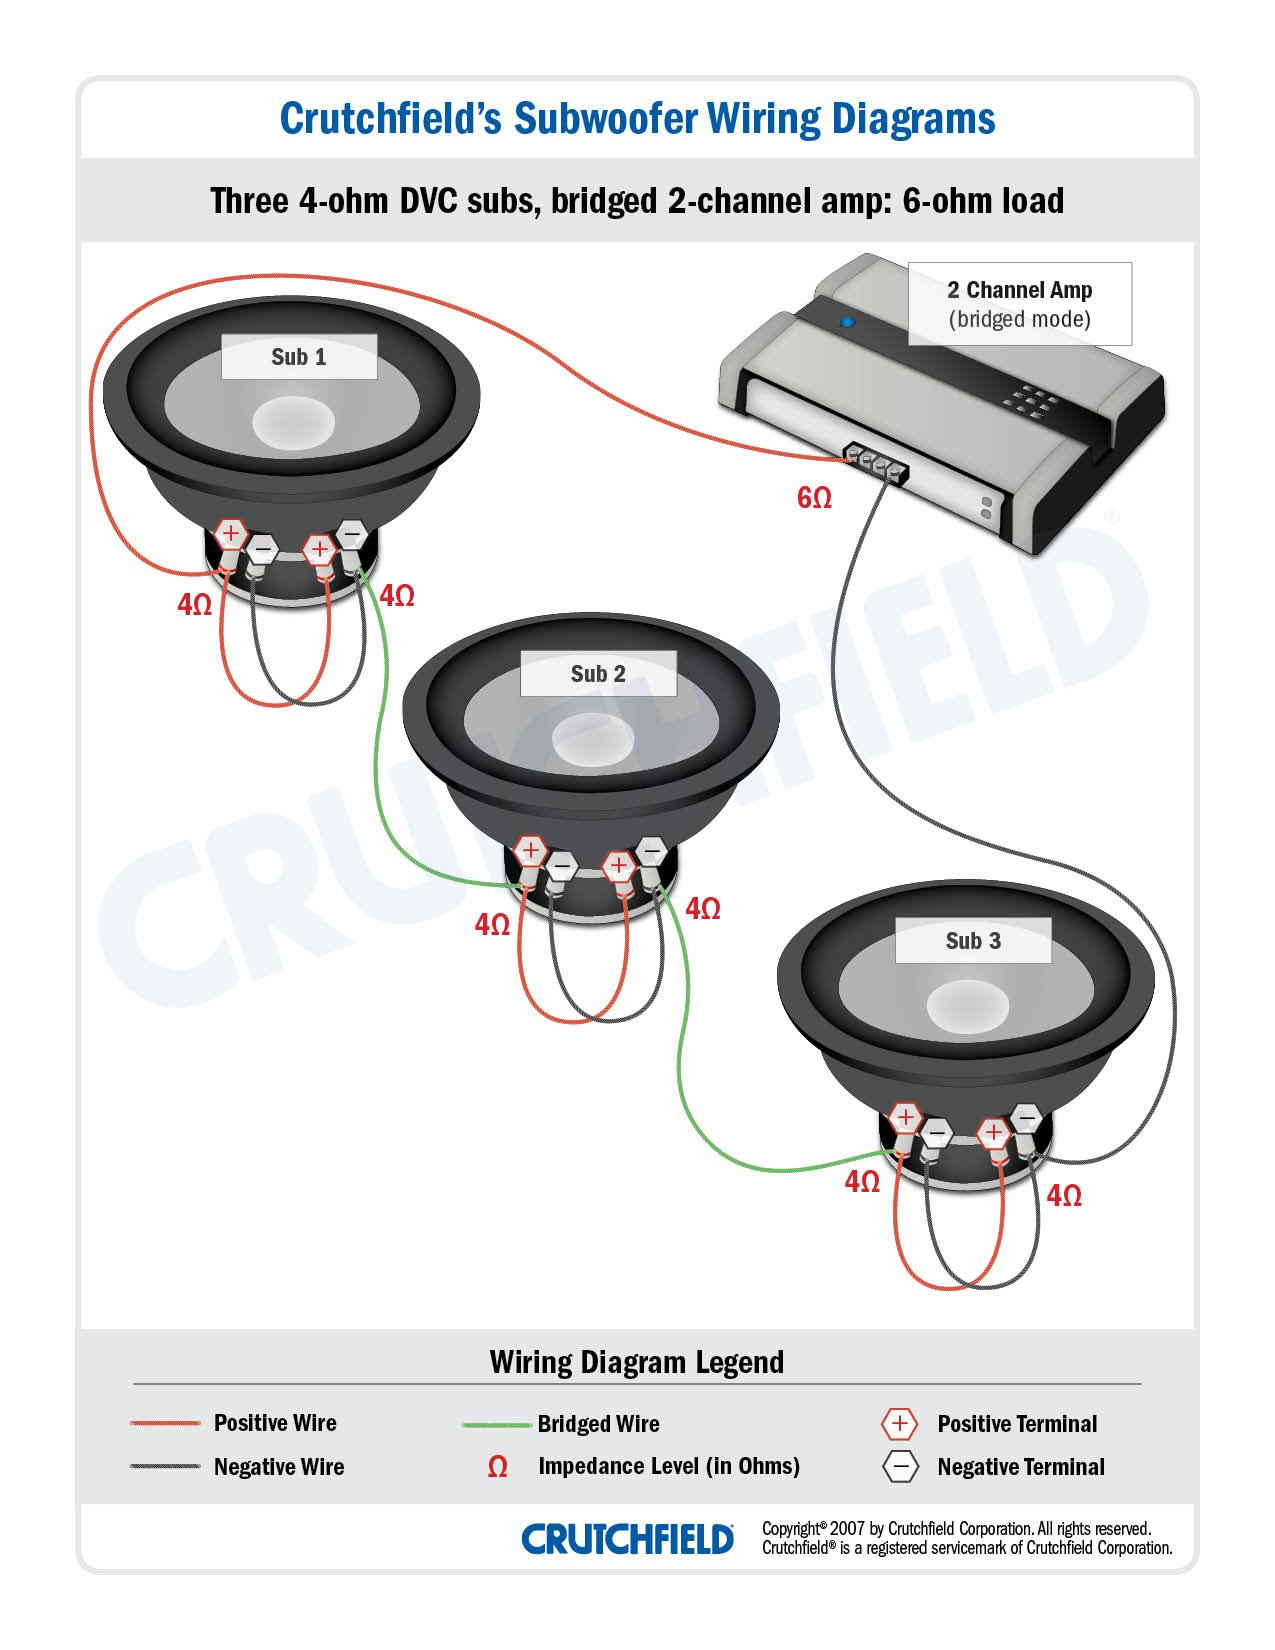 3 DVC 4 ohm 2 ch subwoofer wiring diagrams bose spare tire subwoofer wiring diagram at gsmx.co